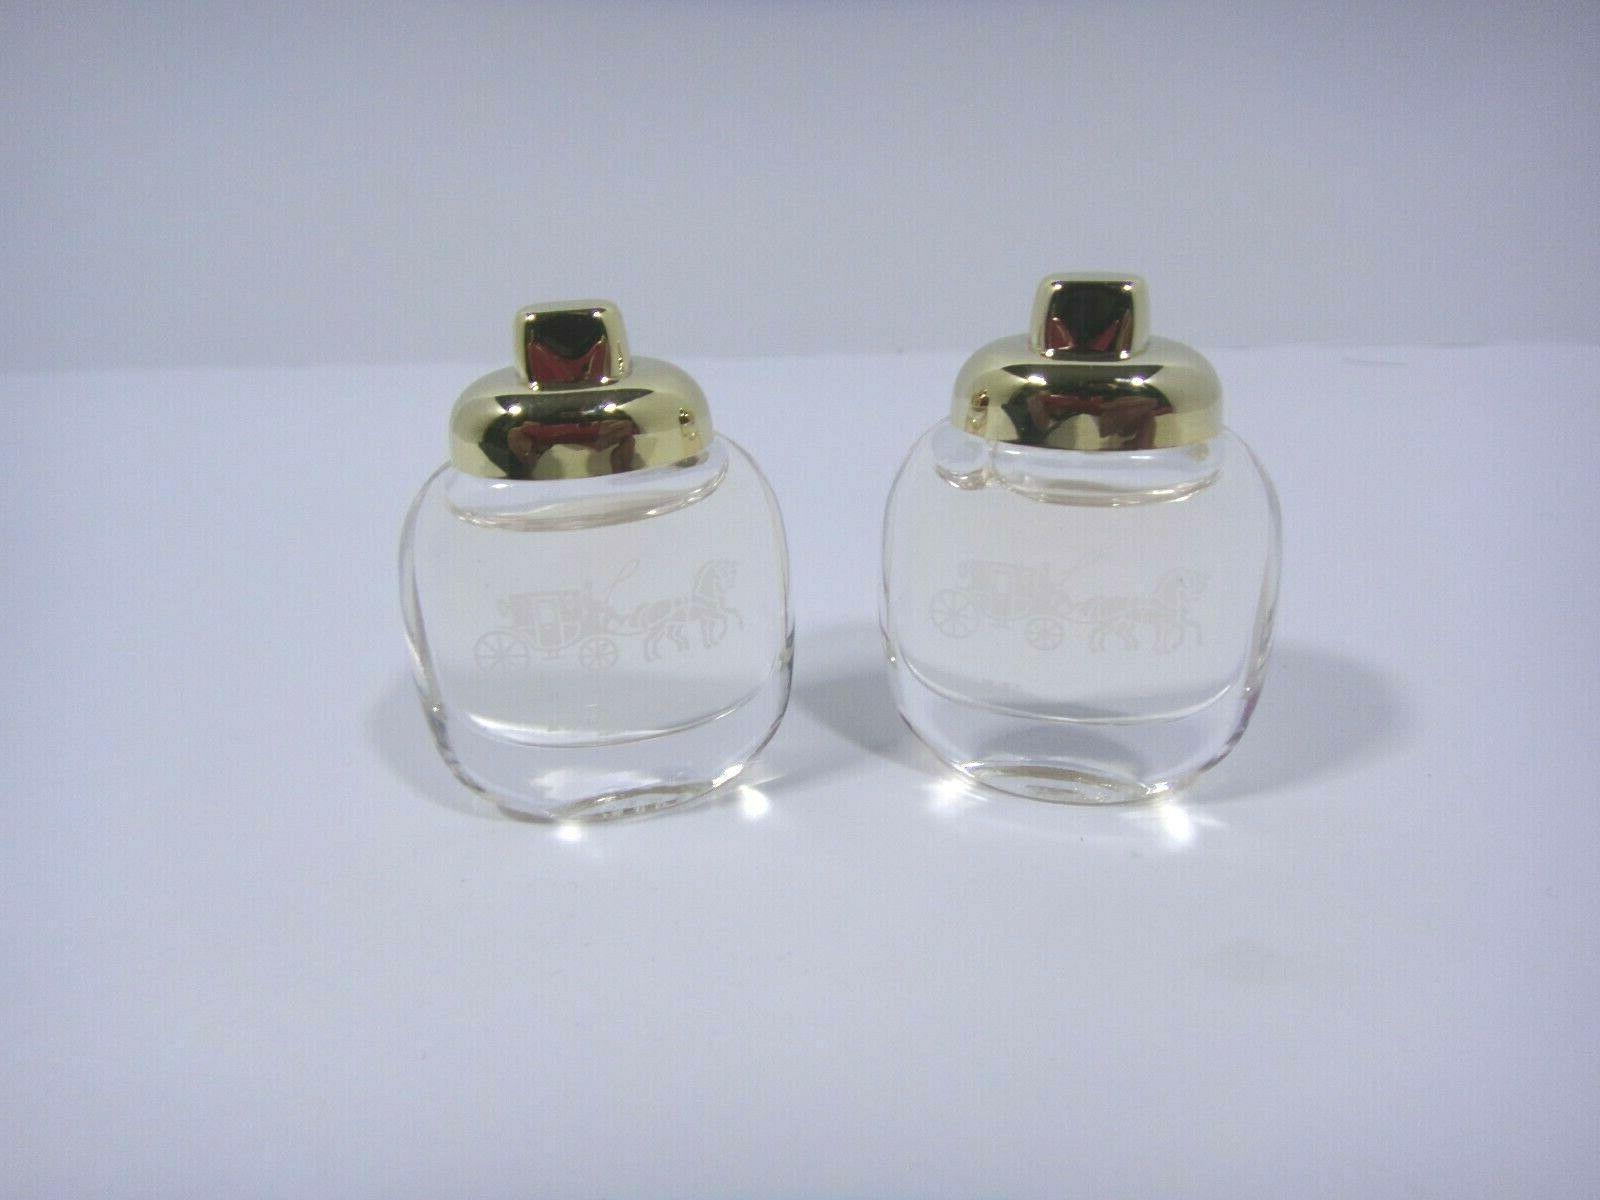 x2 new york edp eau de parfum